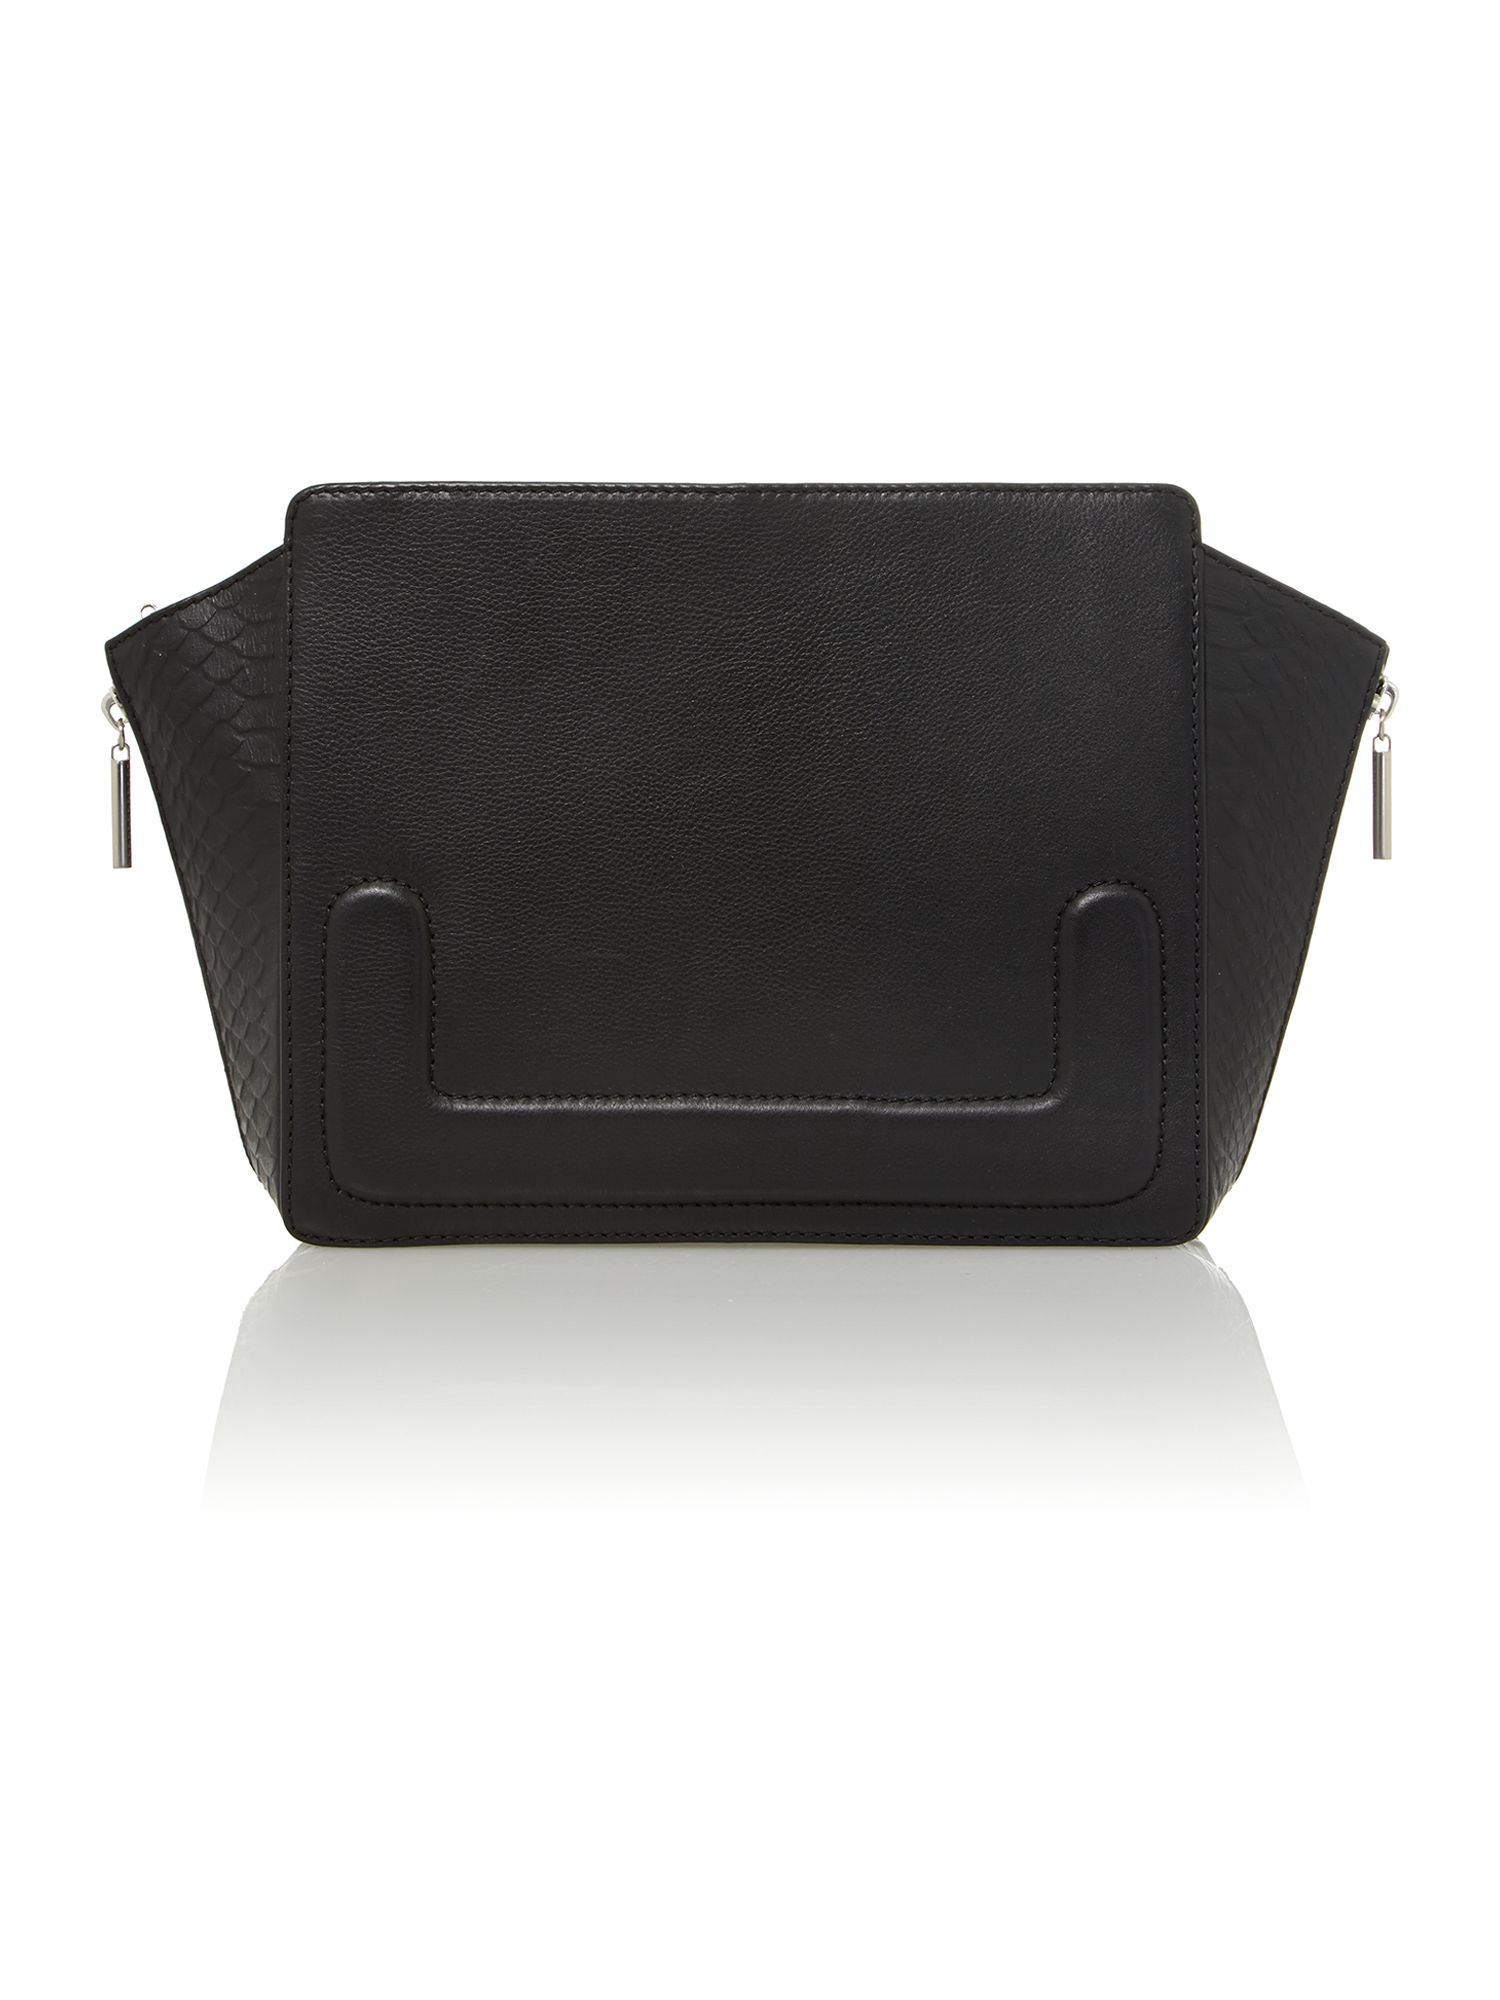 Billie clutch bag